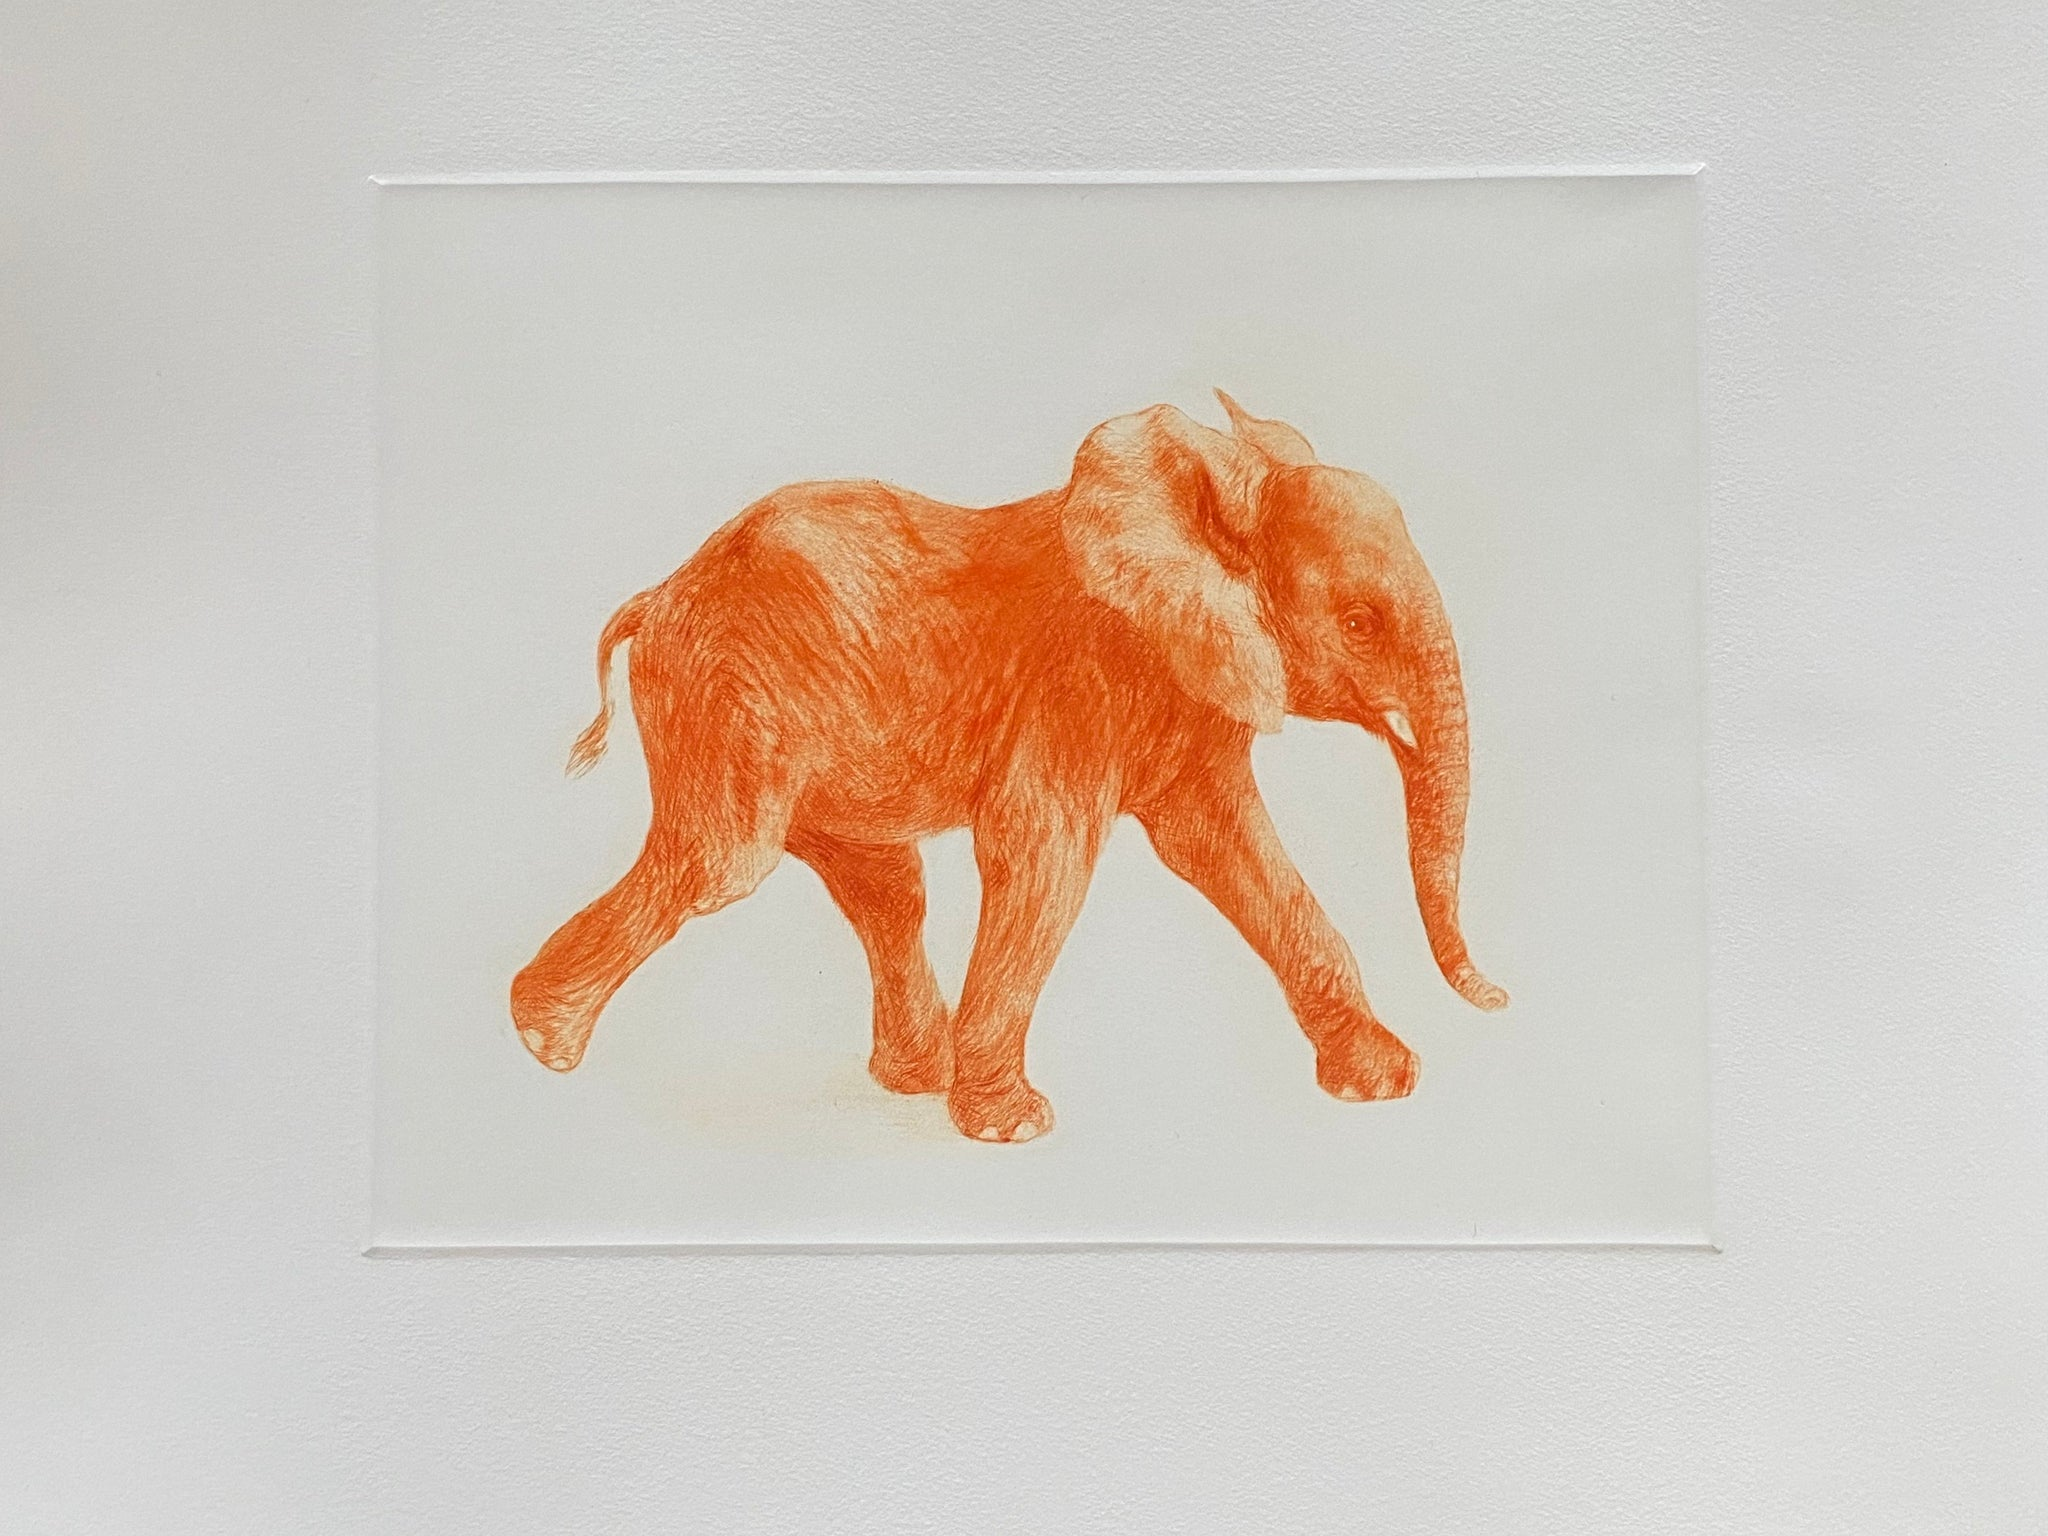 Junger Elefant, orange